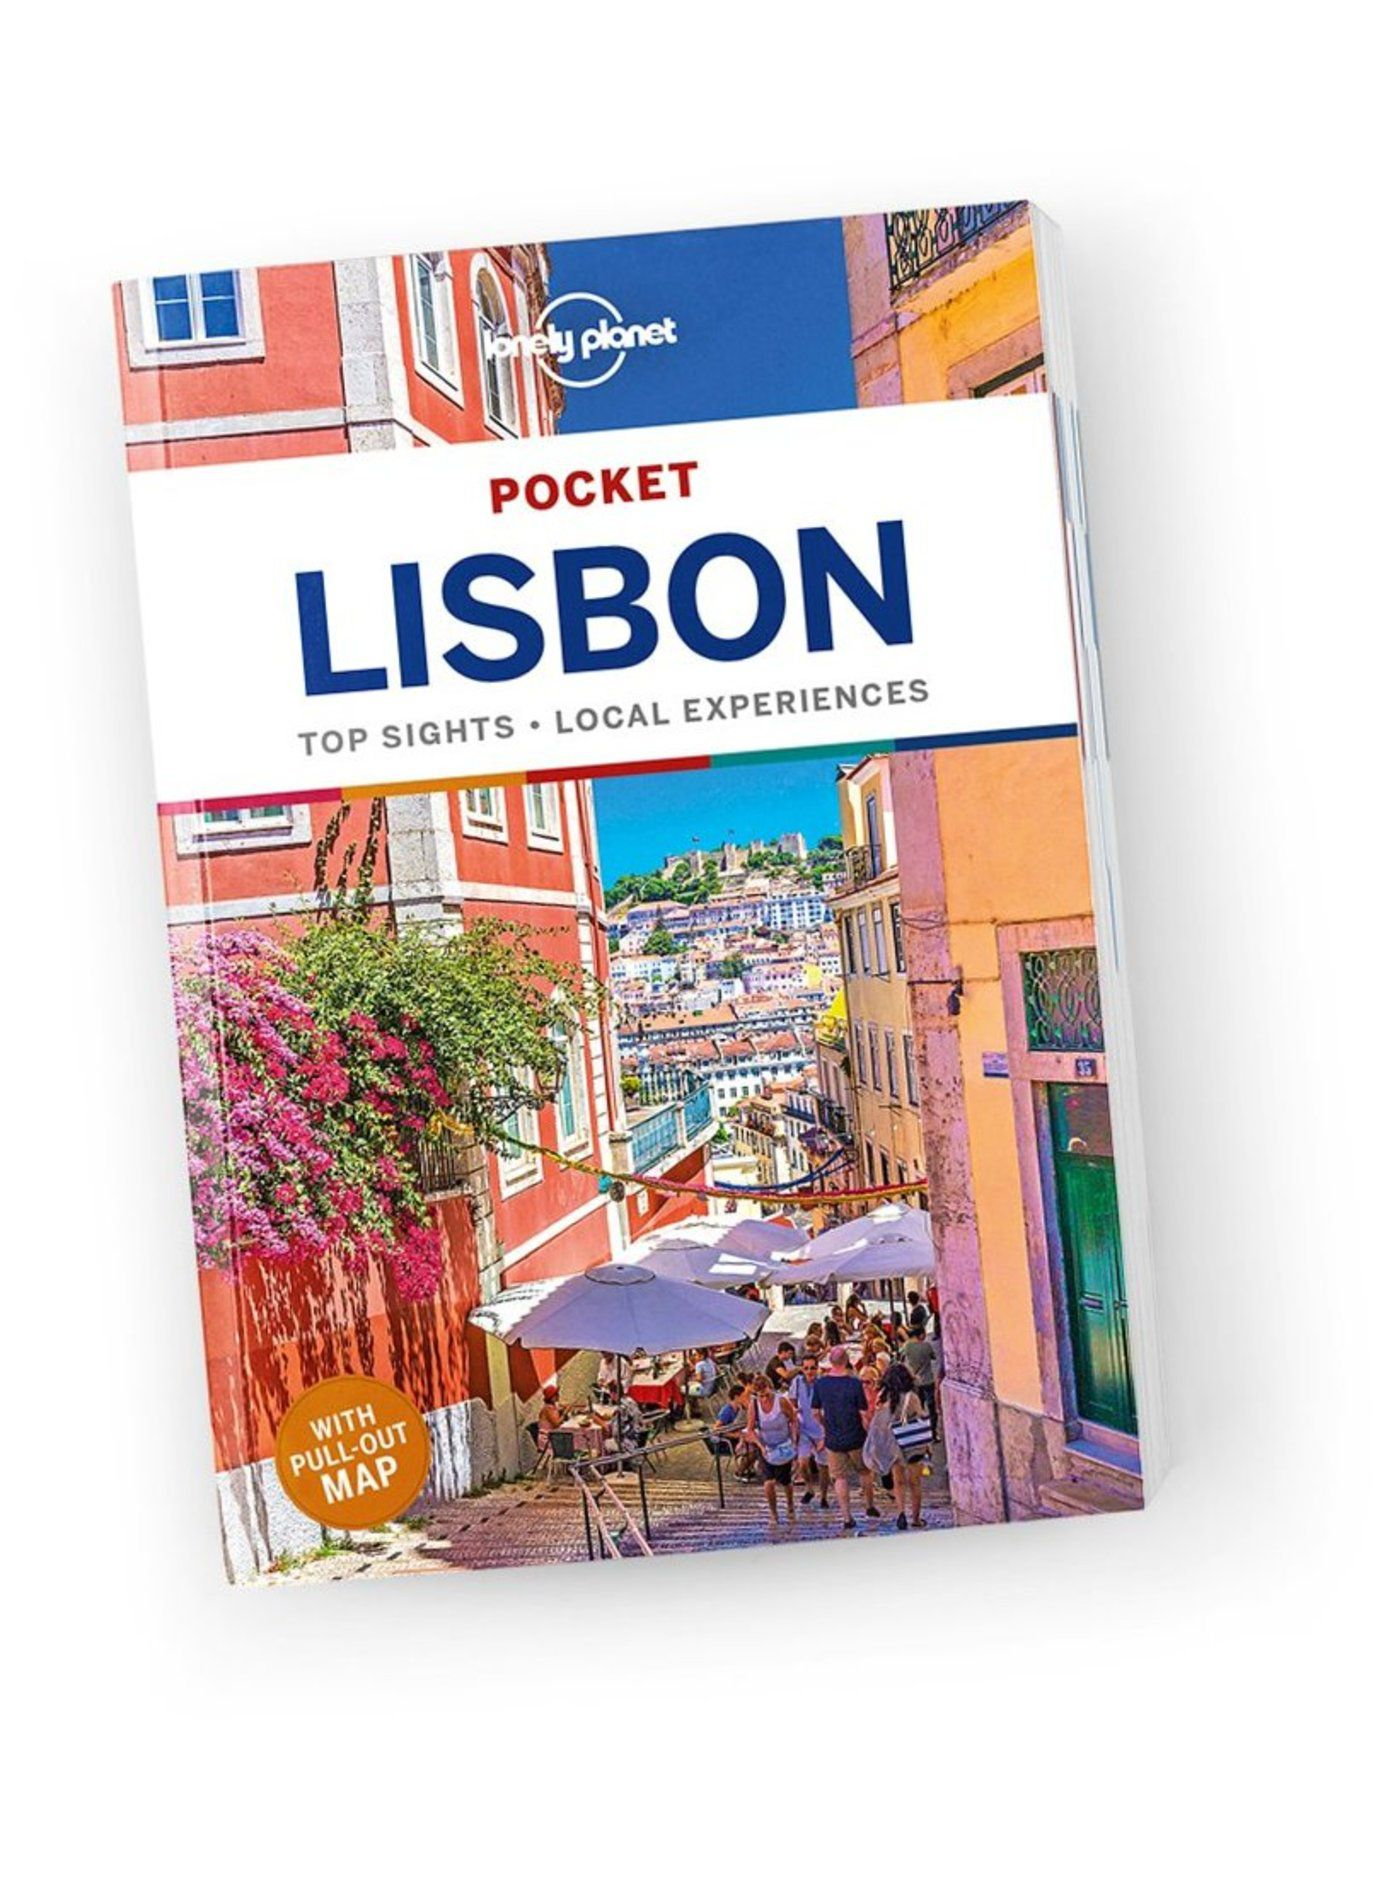 Travel Guide Book - 10 Christmas Gift Ideas for your travel buddy.